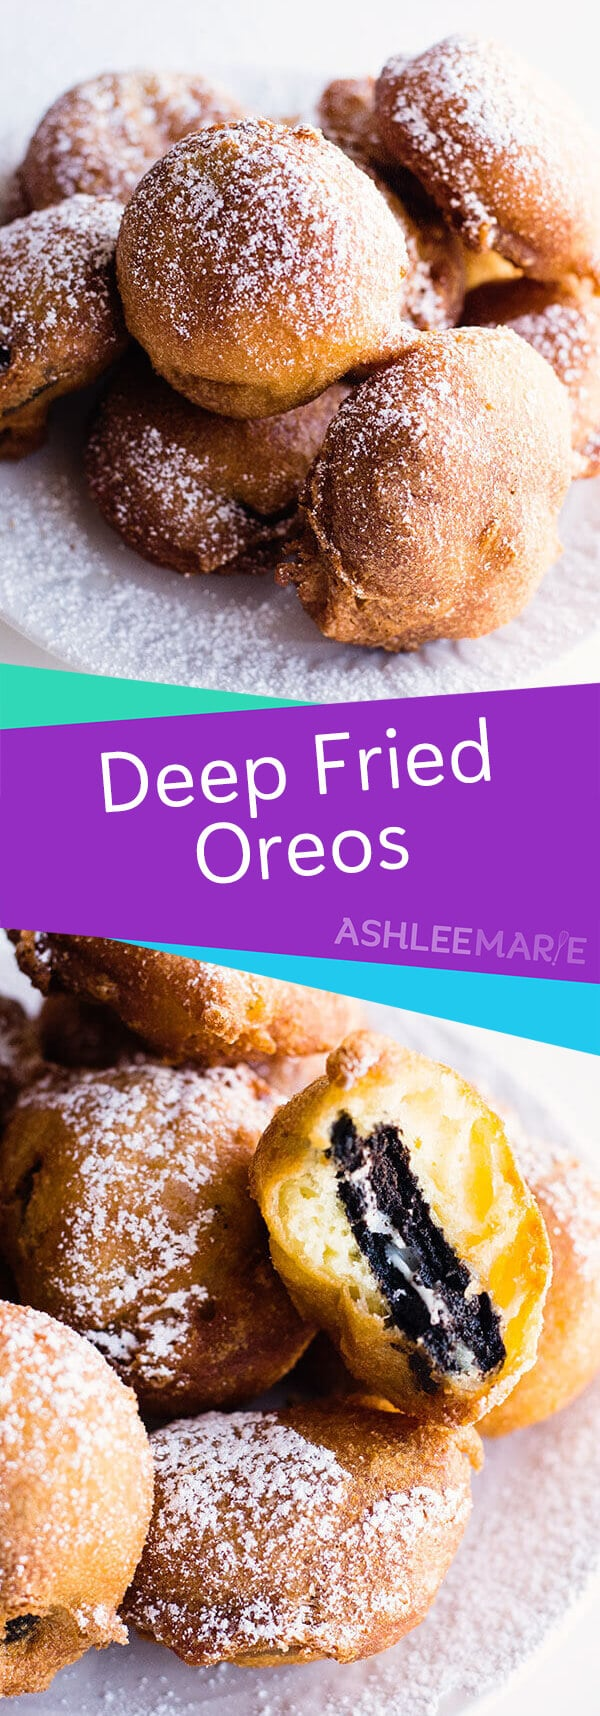 deep fried oreos - fair food